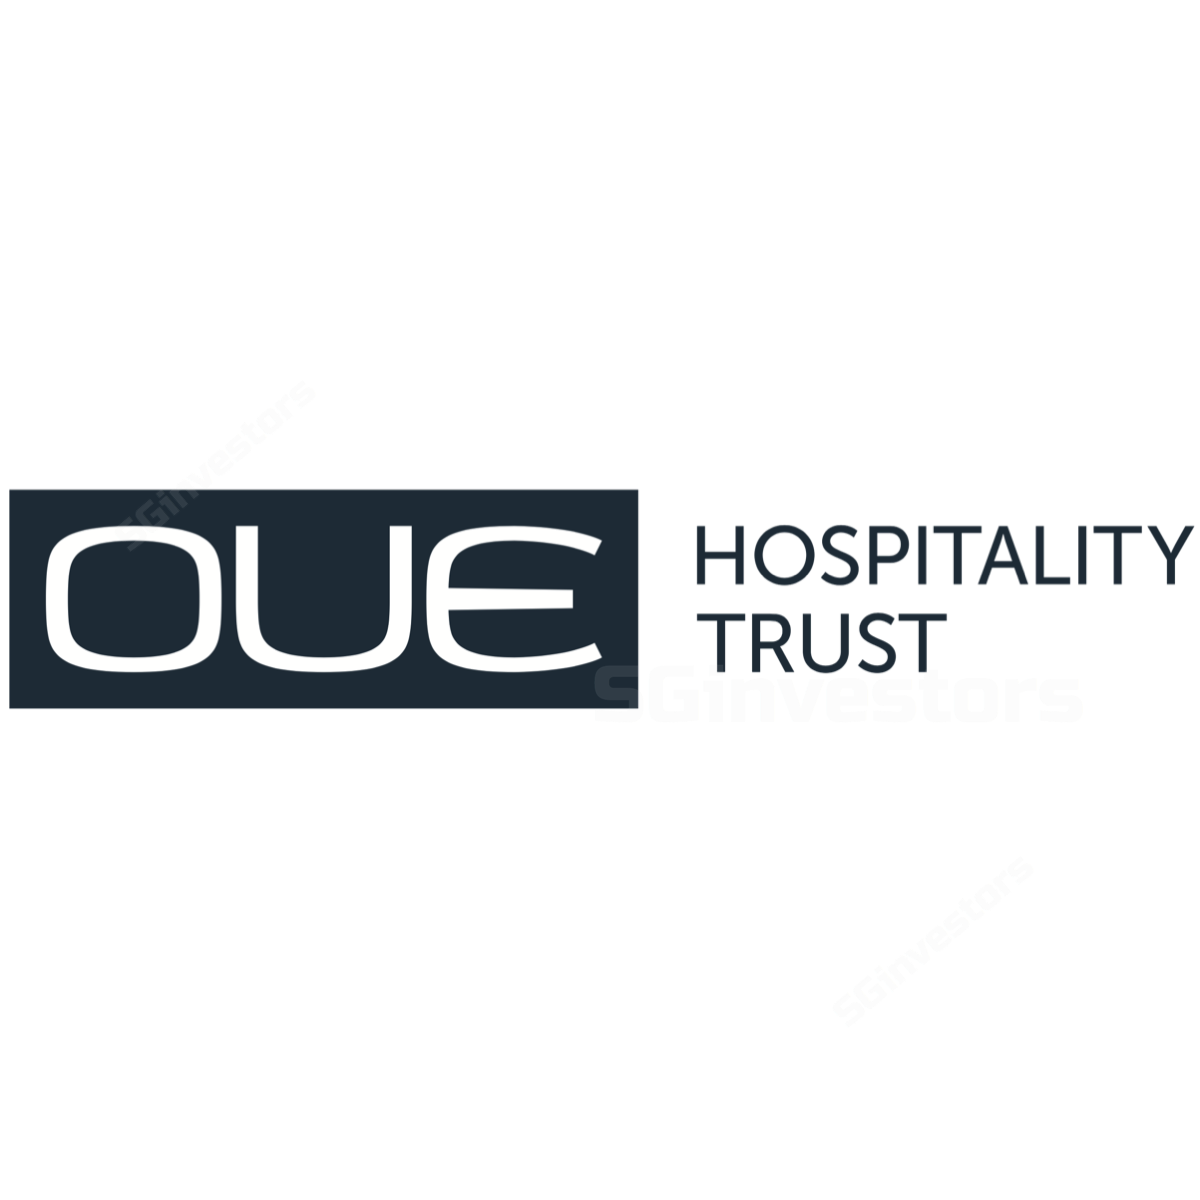 OUE Hospitality Trust - DBS Vickers 2017-12-15: Turning Up